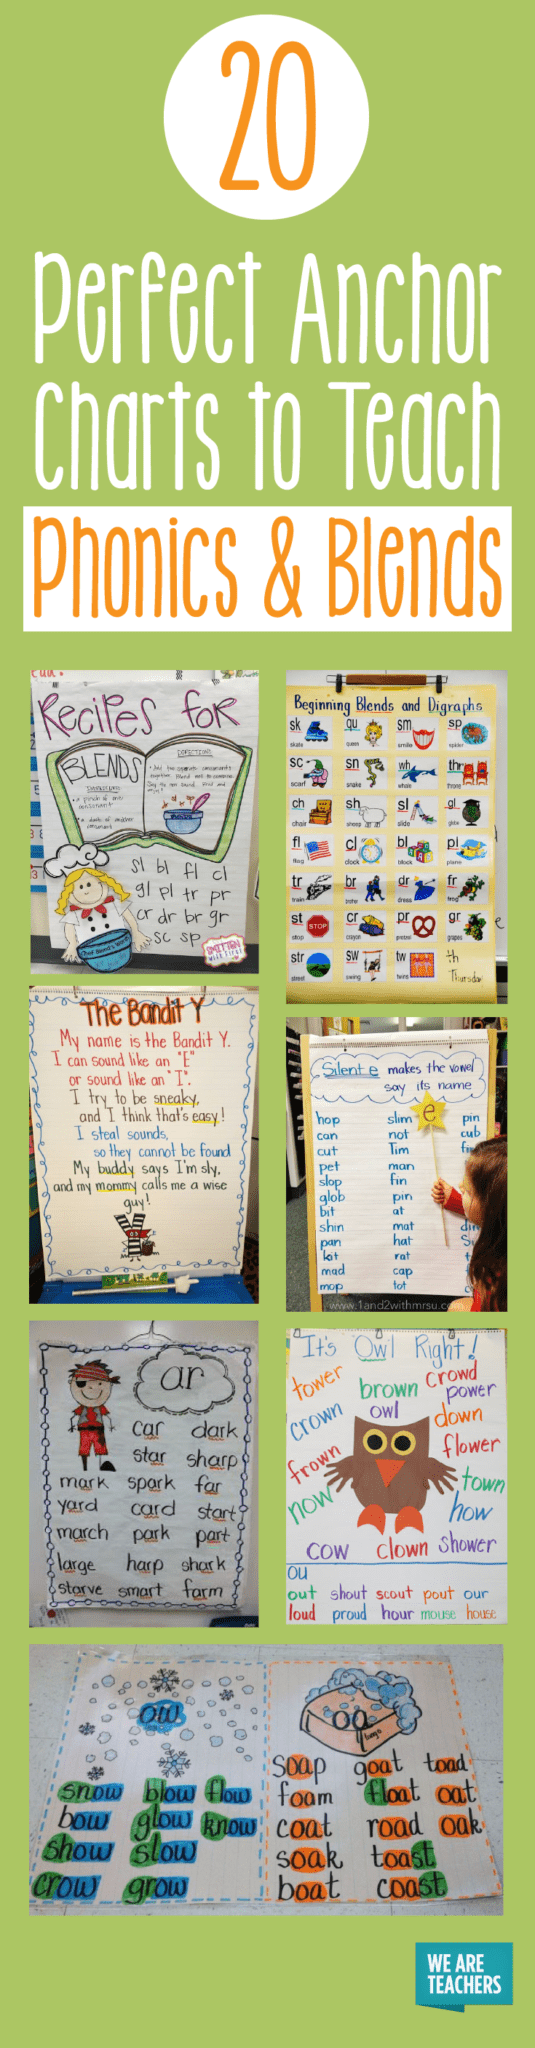 medium resolution of 20 Perfect Anchor Charts for Teaching Phonics and Blends